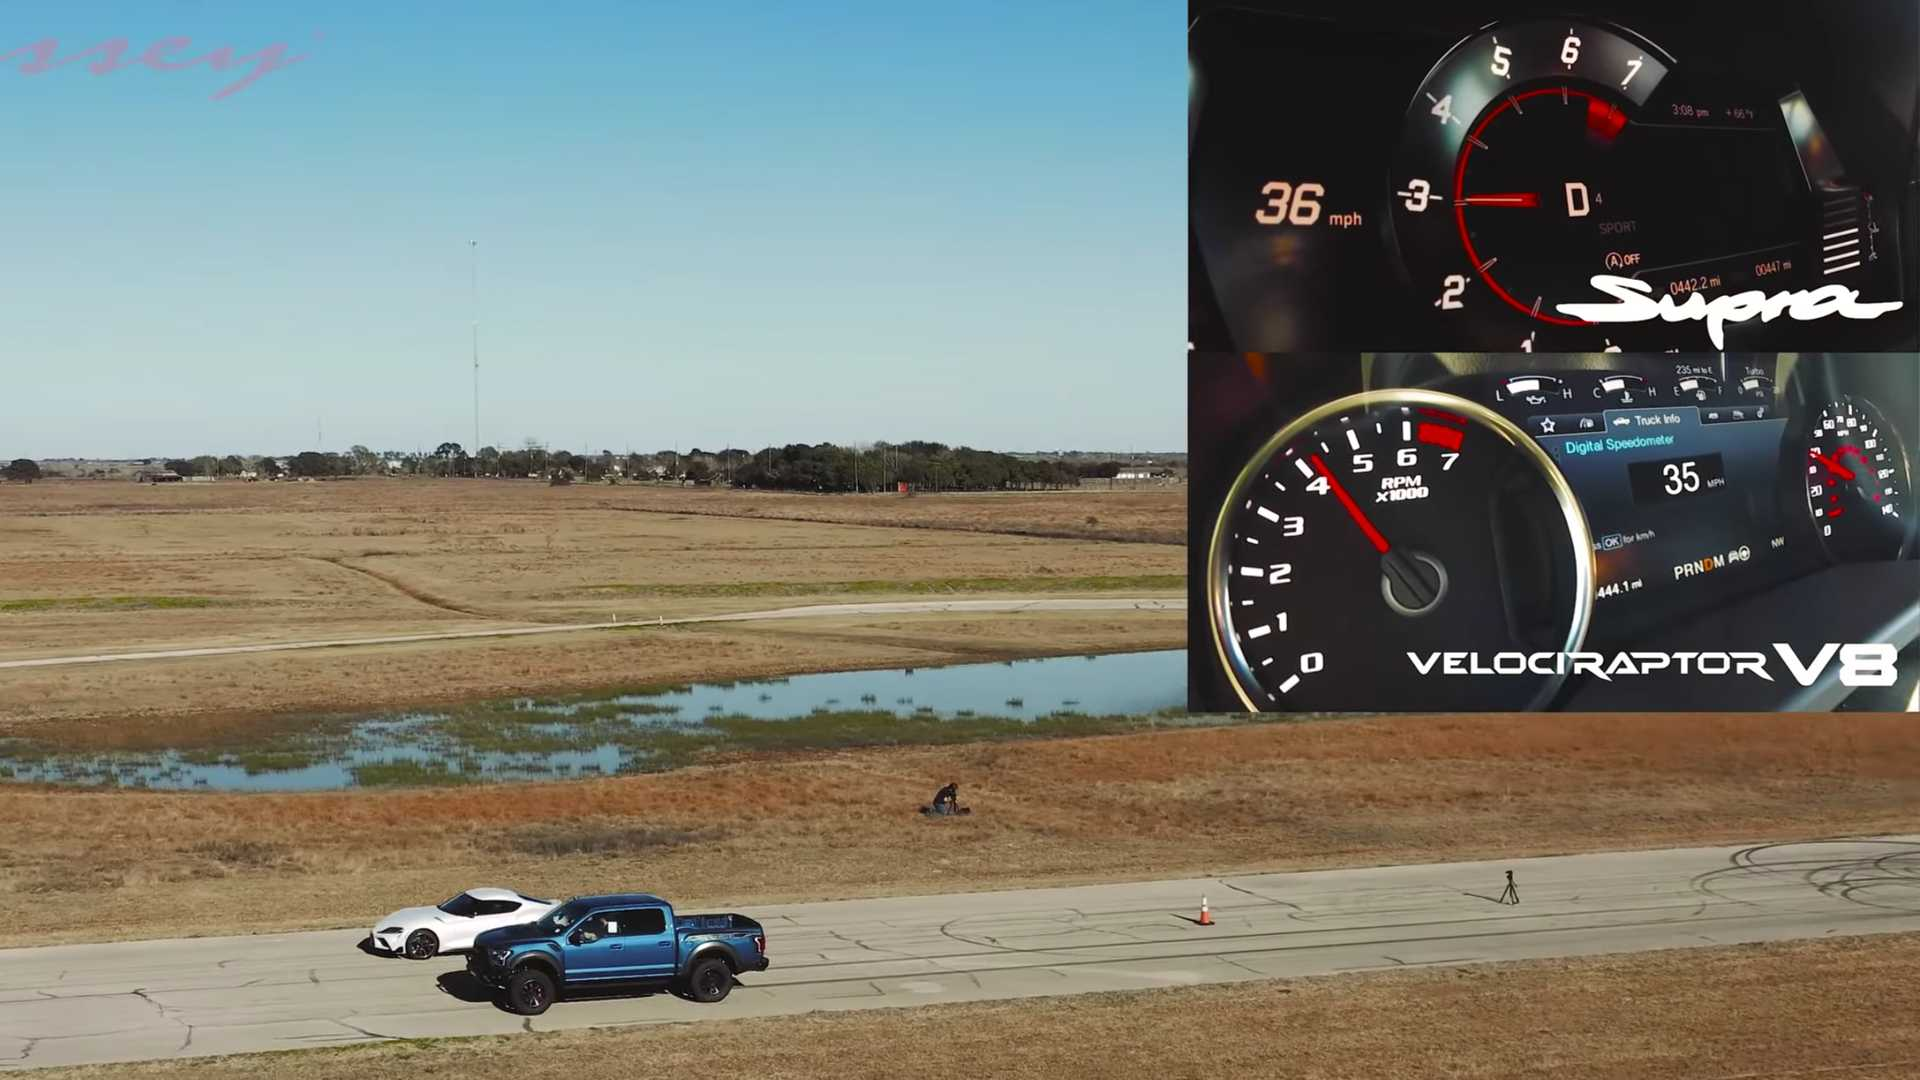 Toyota Supra And Hennessey Velocirpator V8 Race In Battle Of Unequals